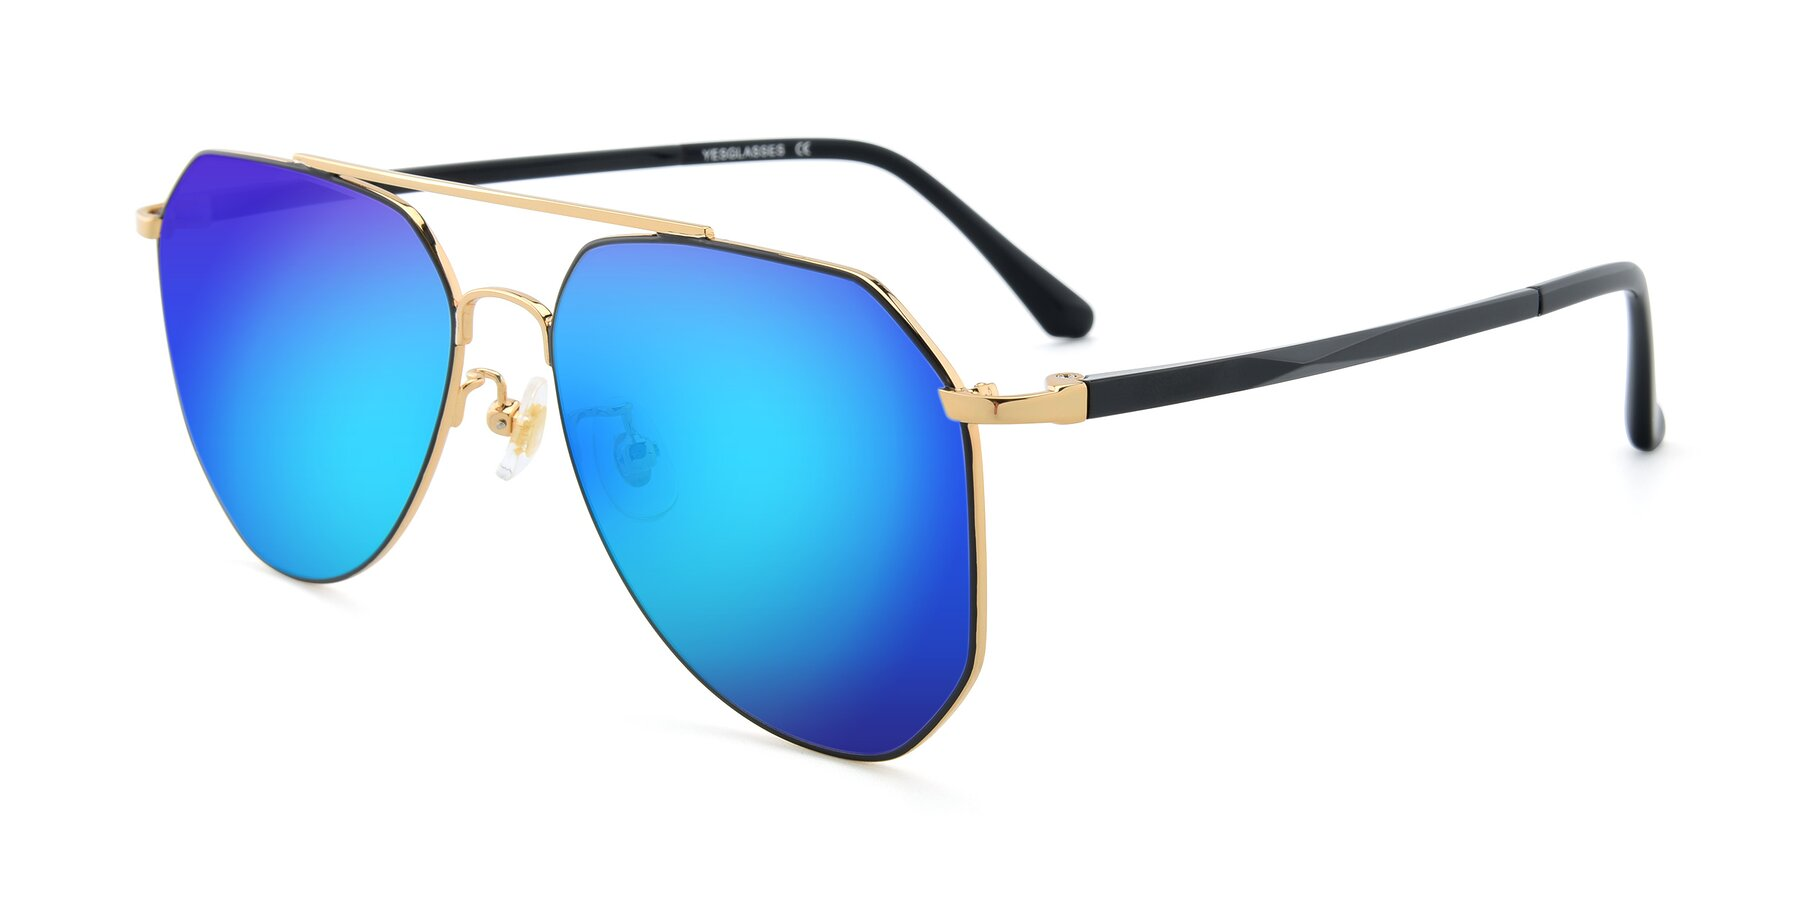 Angle of XC-8040 in Black/ Gold with Blue Mirrored Lenses